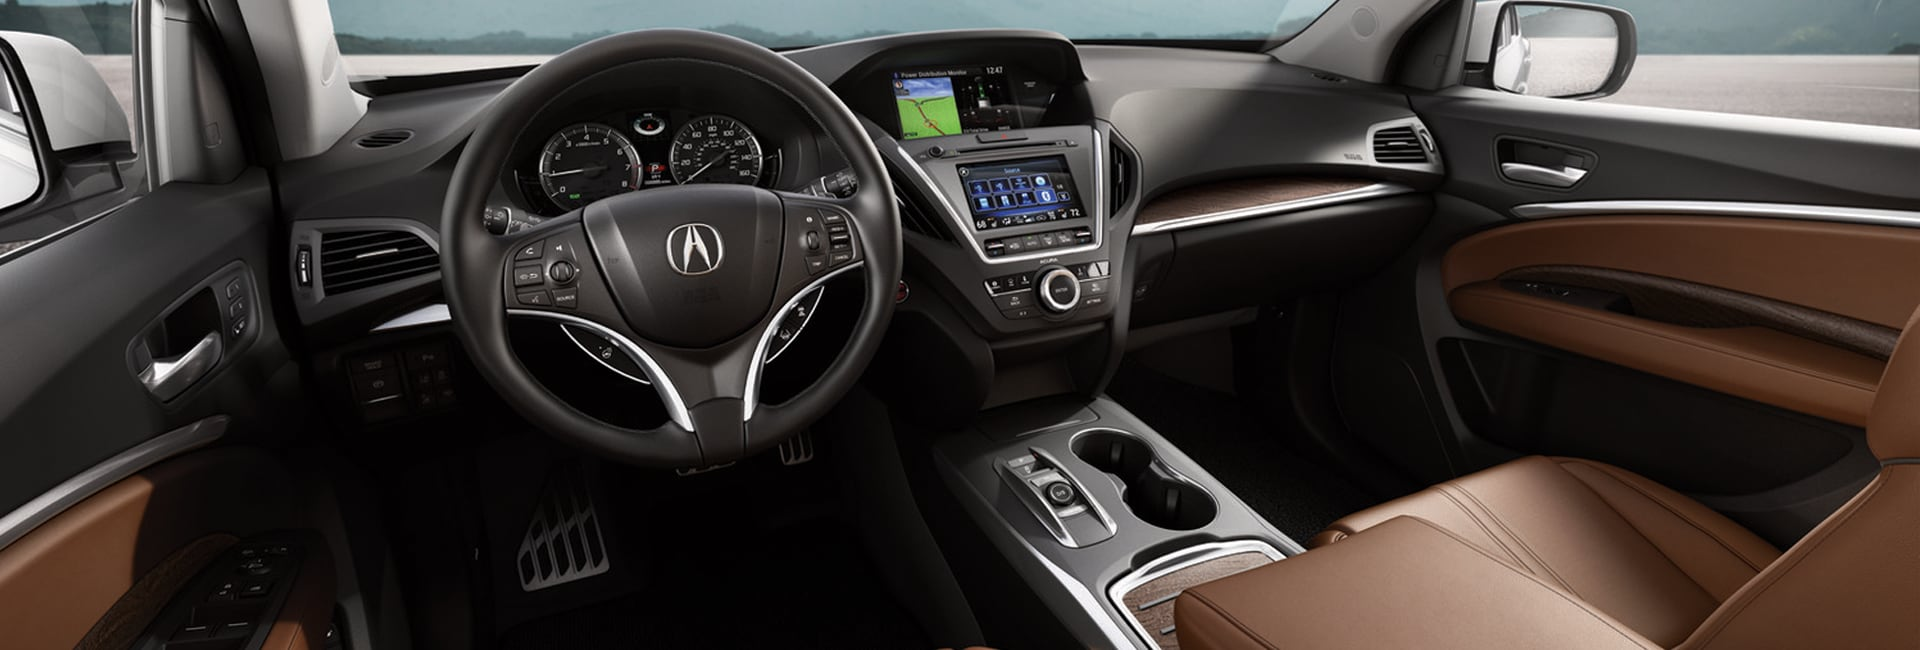 2017 Acura MDX Interior Features